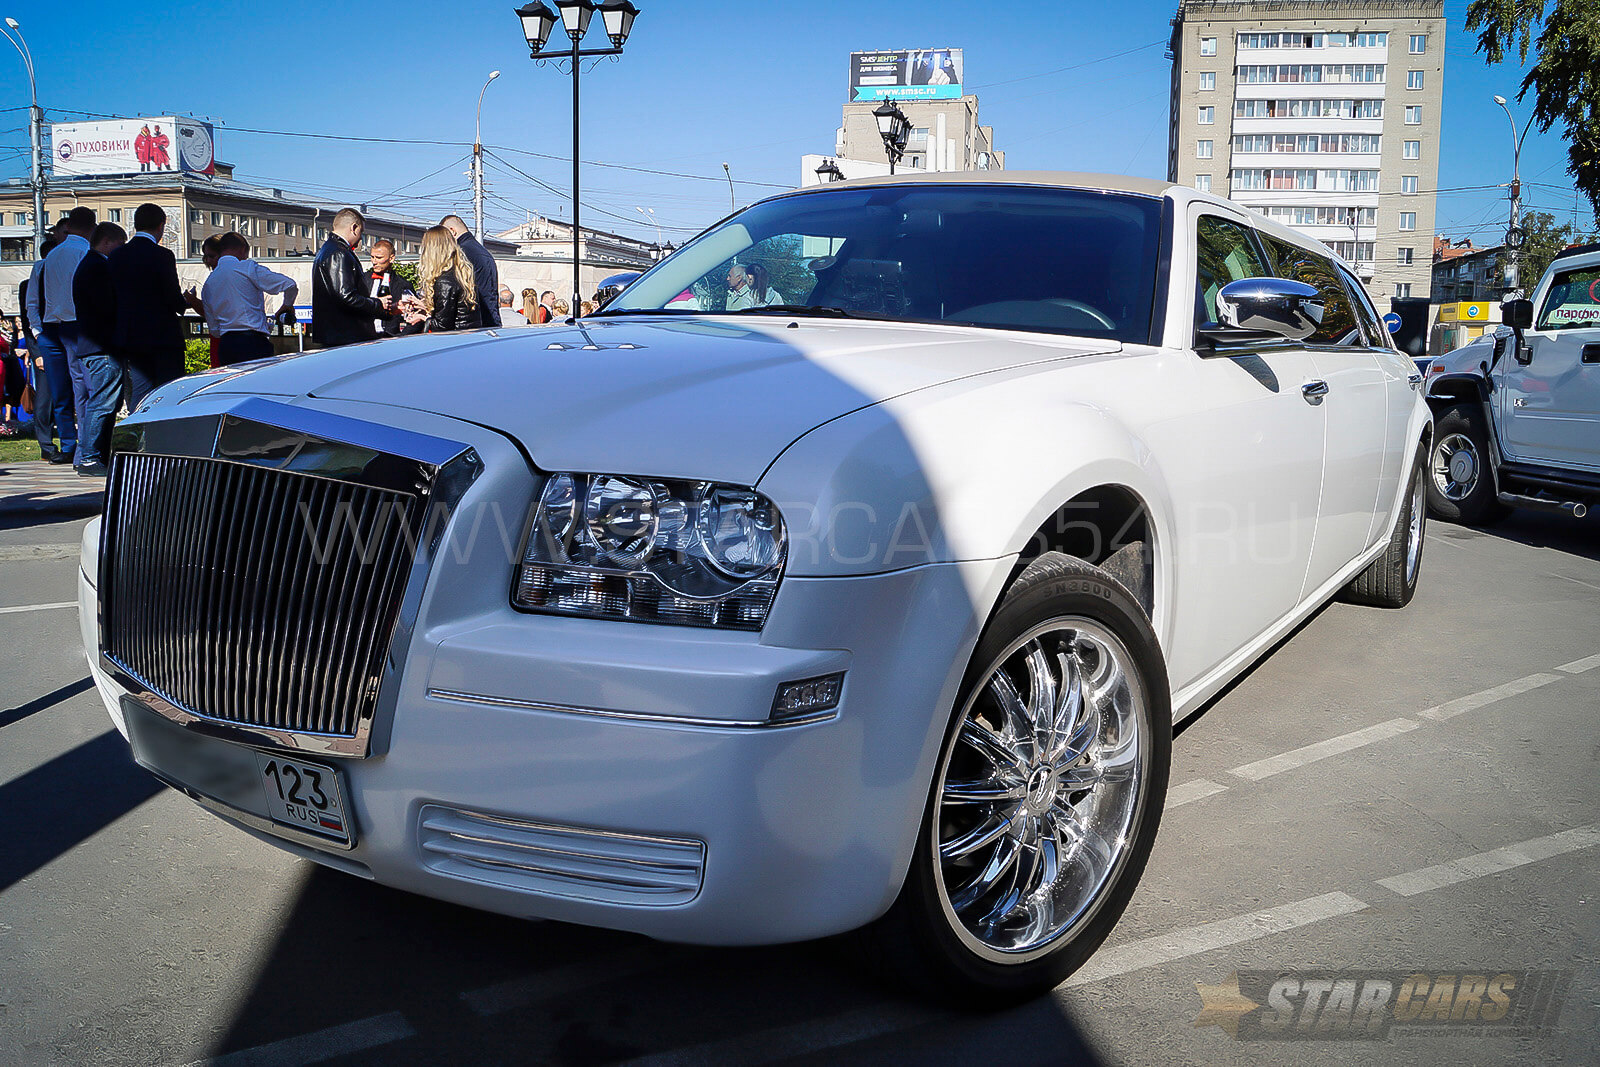 Аренда лимузина Chrysler 300C Rolls Royce в Новосибирске